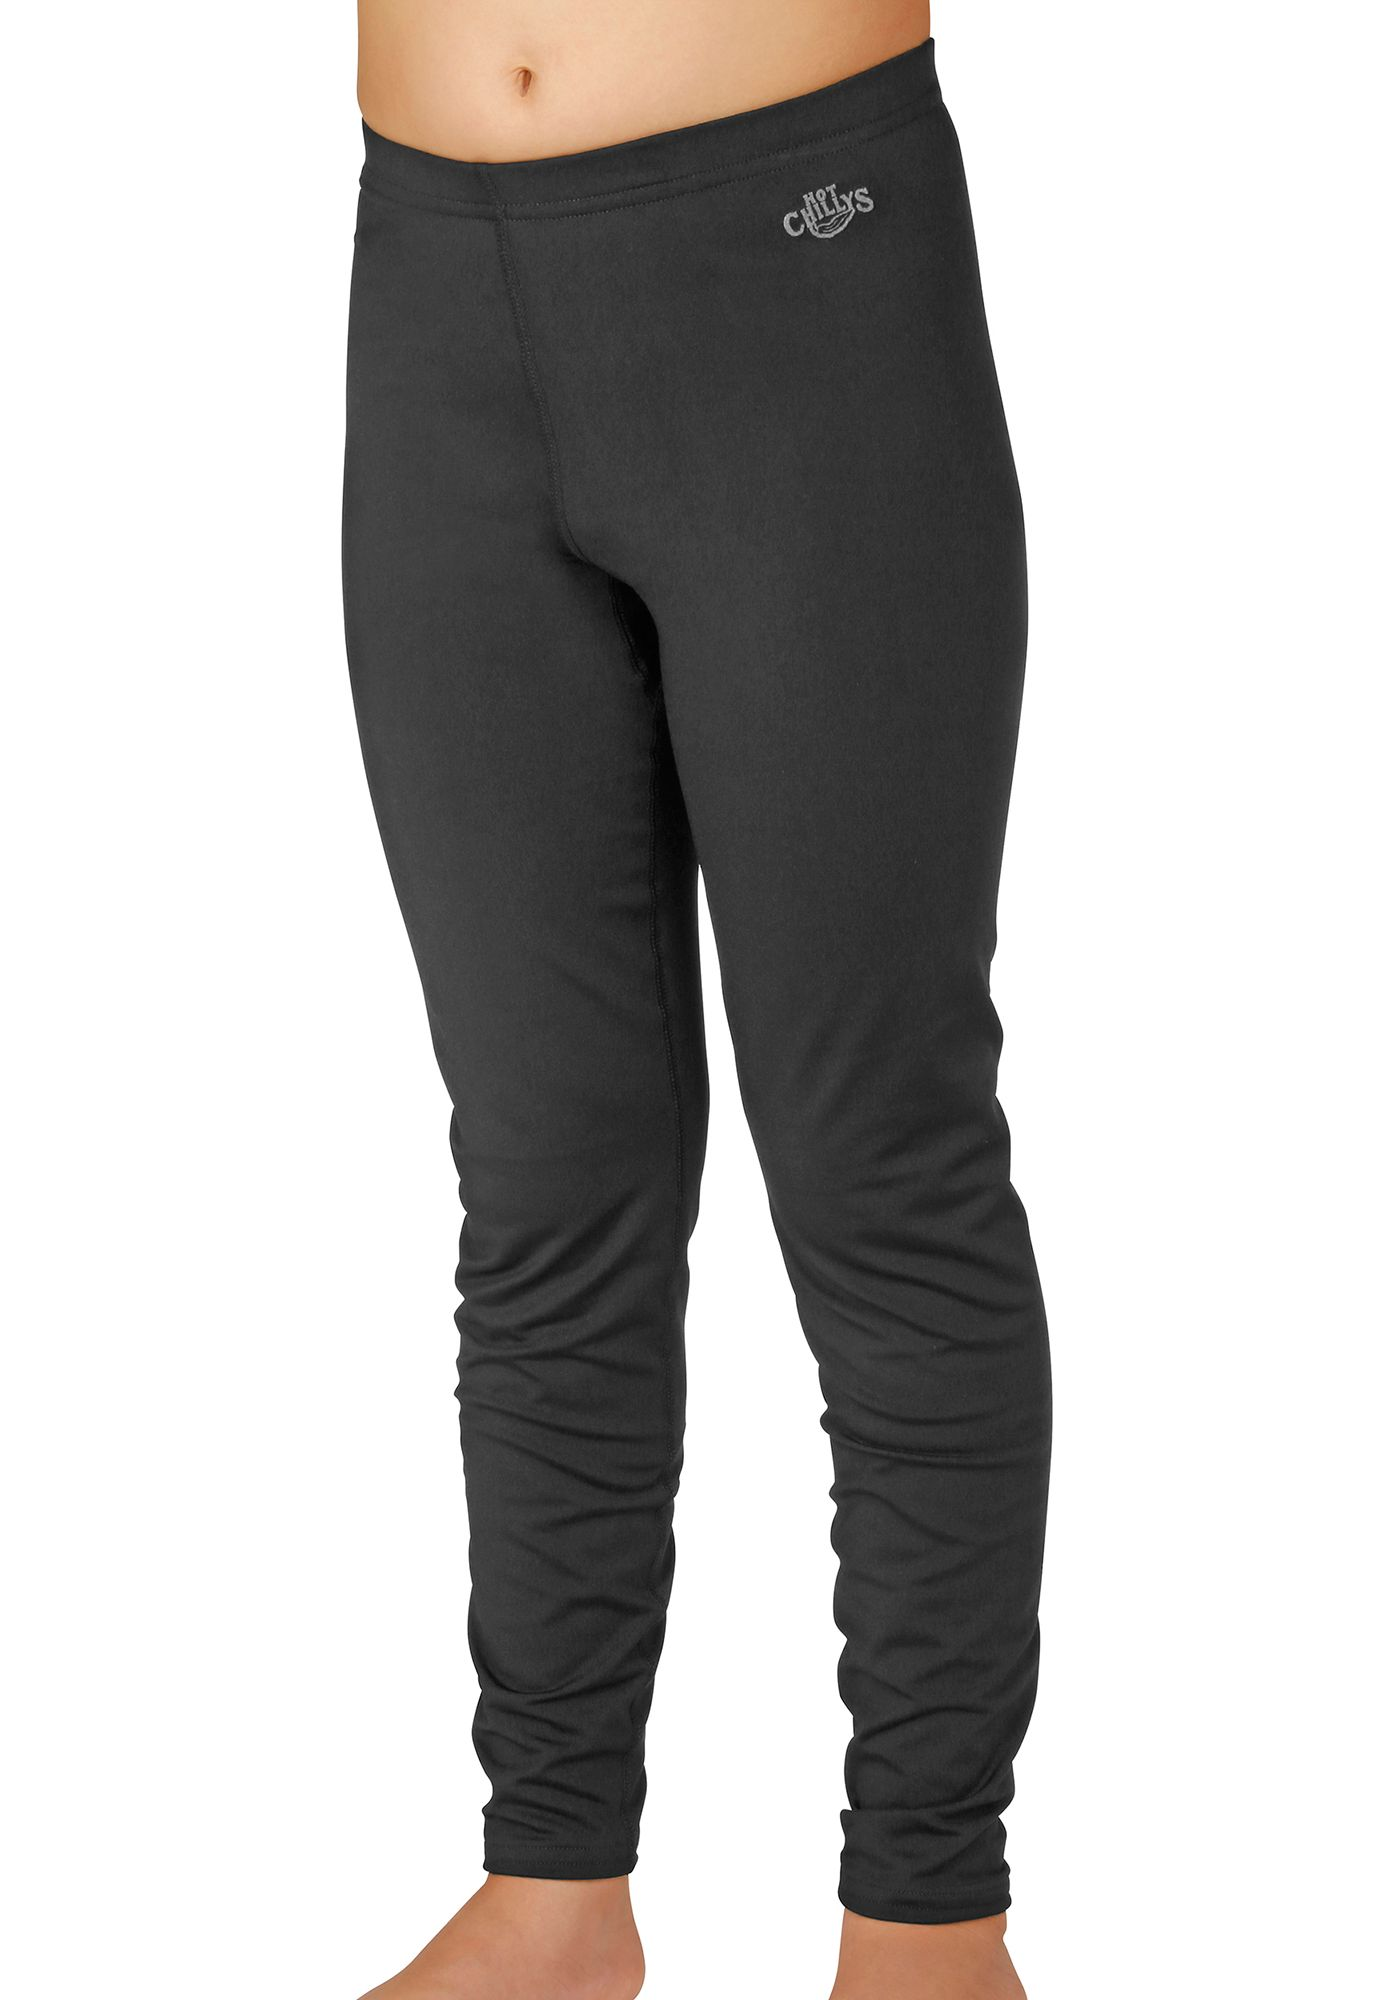 Hot Chillys Youth Micro-Elite Chamois Tights